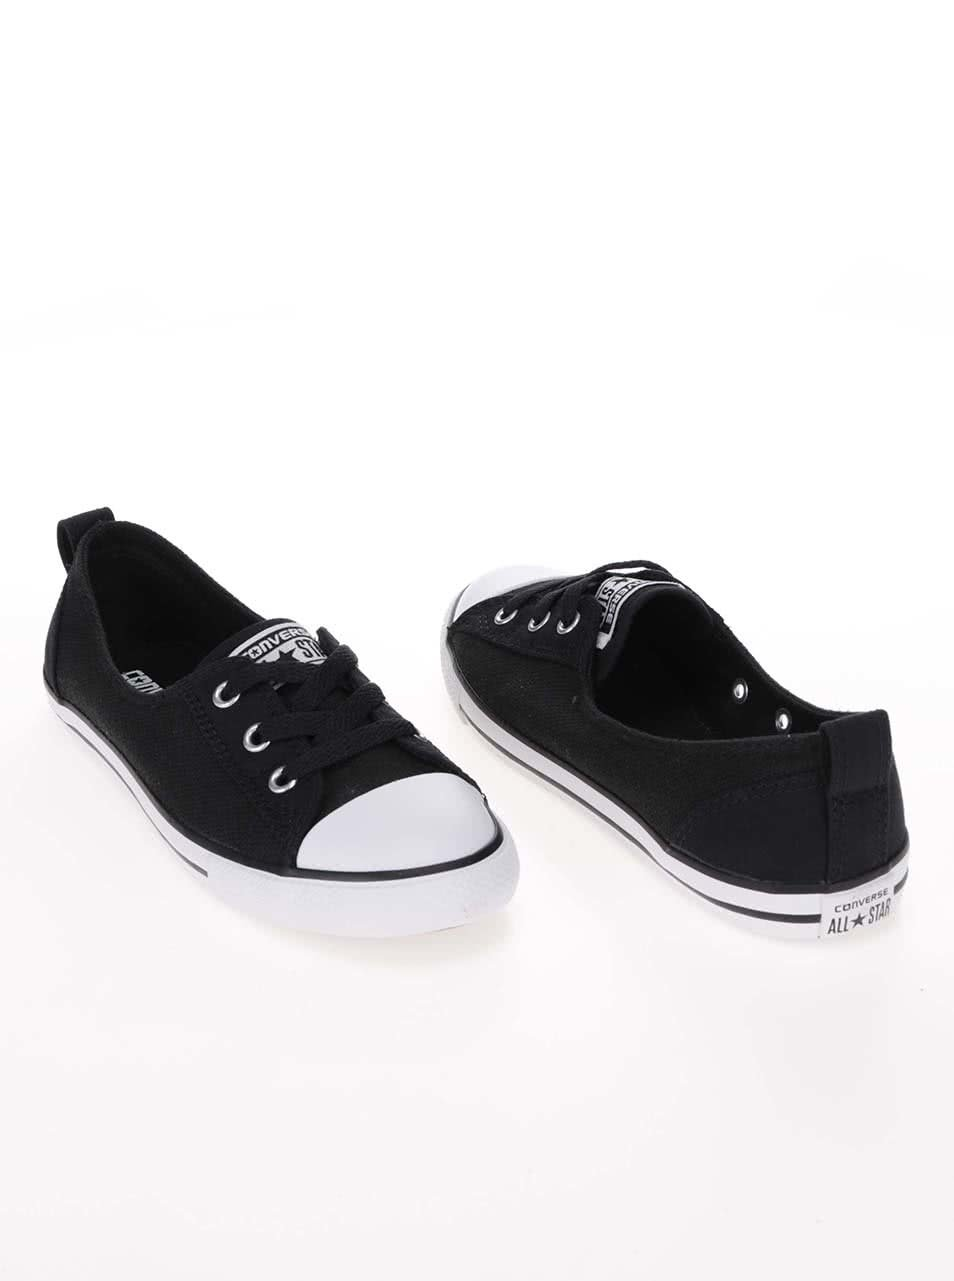 db9ae1c164f Tenisi Converse Chuck Taylor All Star Ballet Lace negri ...